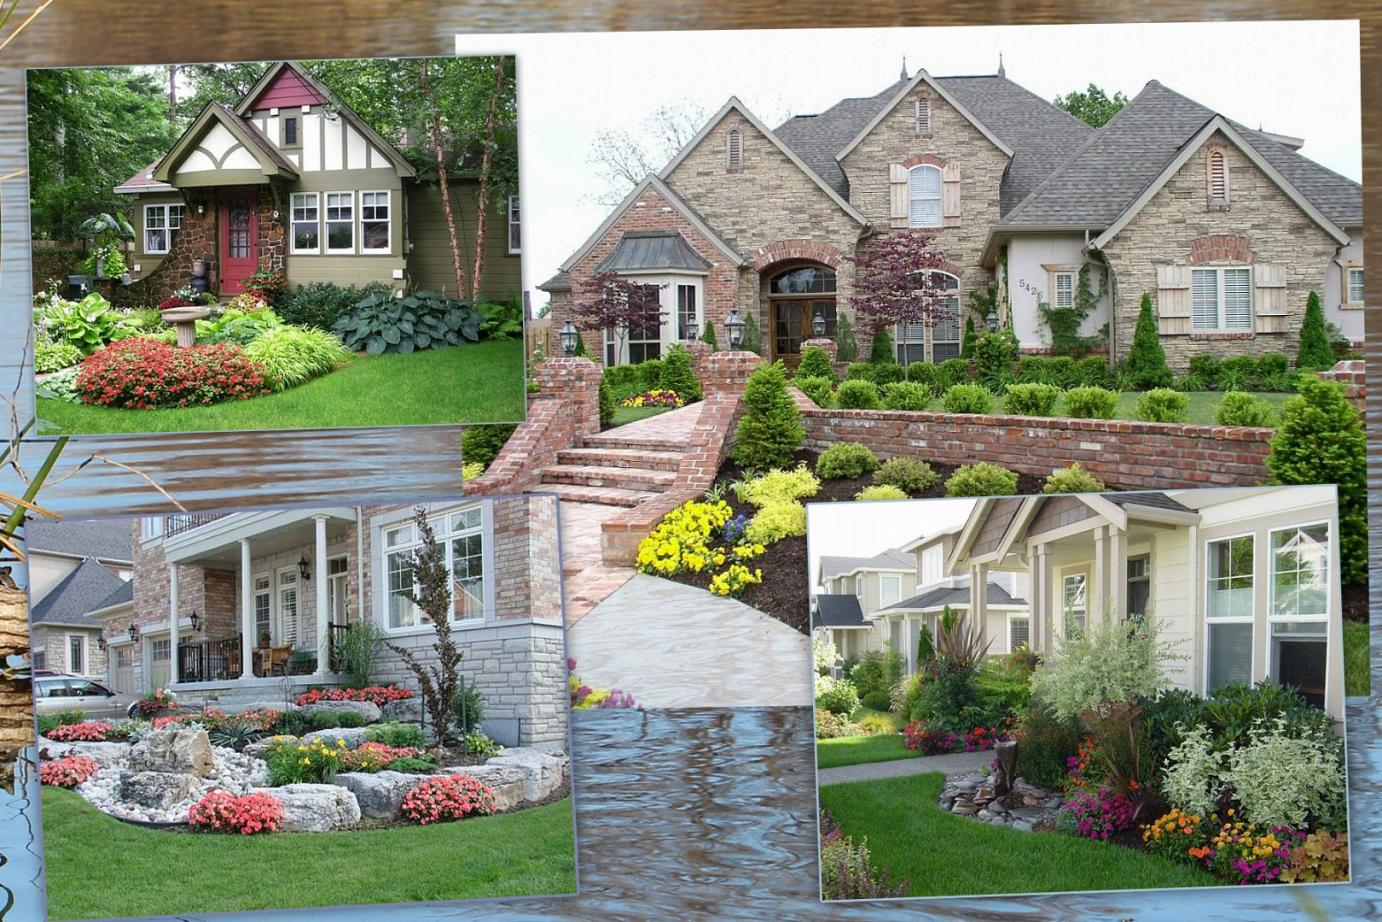 Fullsize Of Michigan Landscaping Ideas